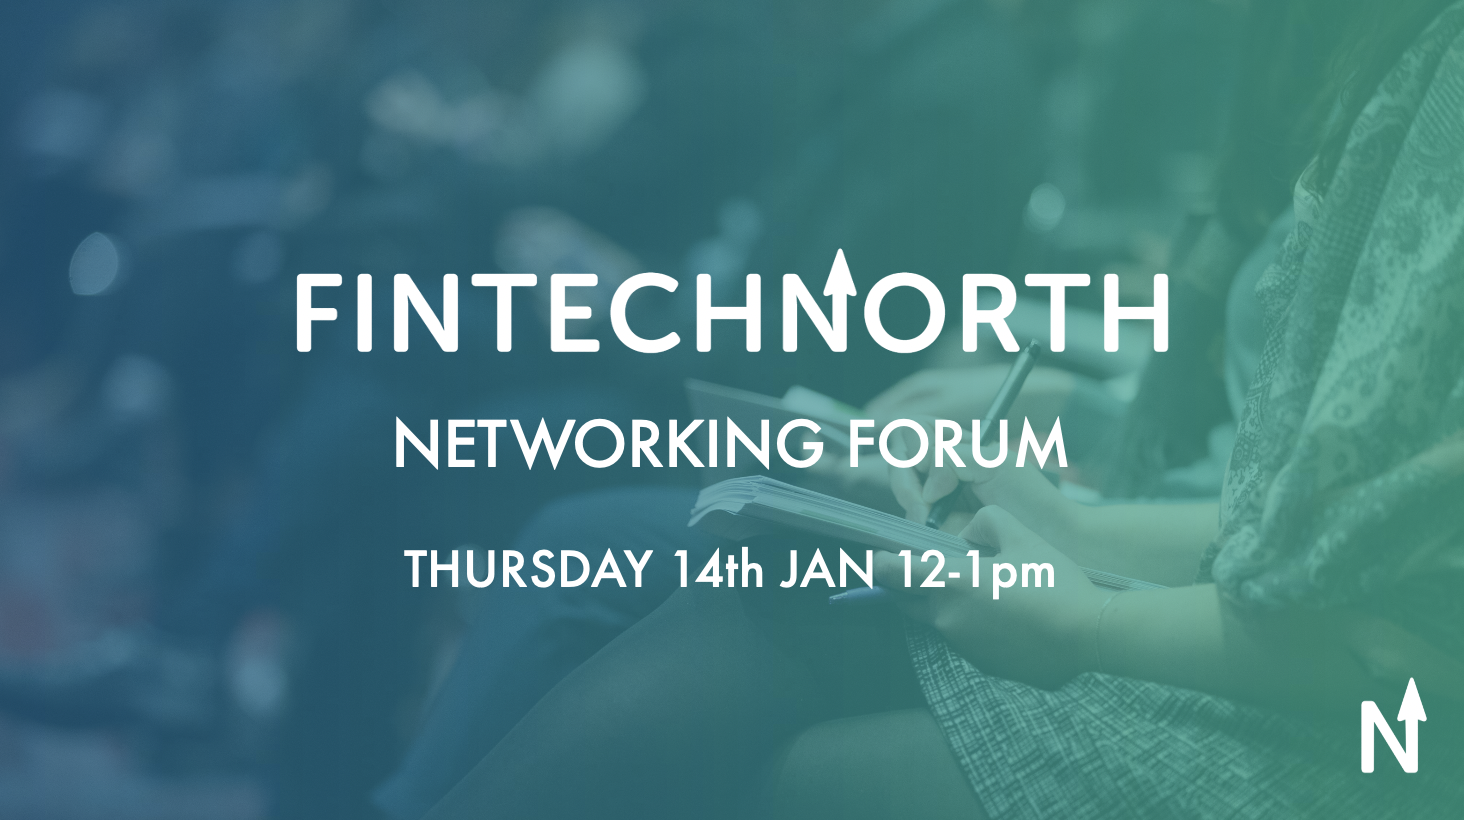 FinTech North Networking Forum